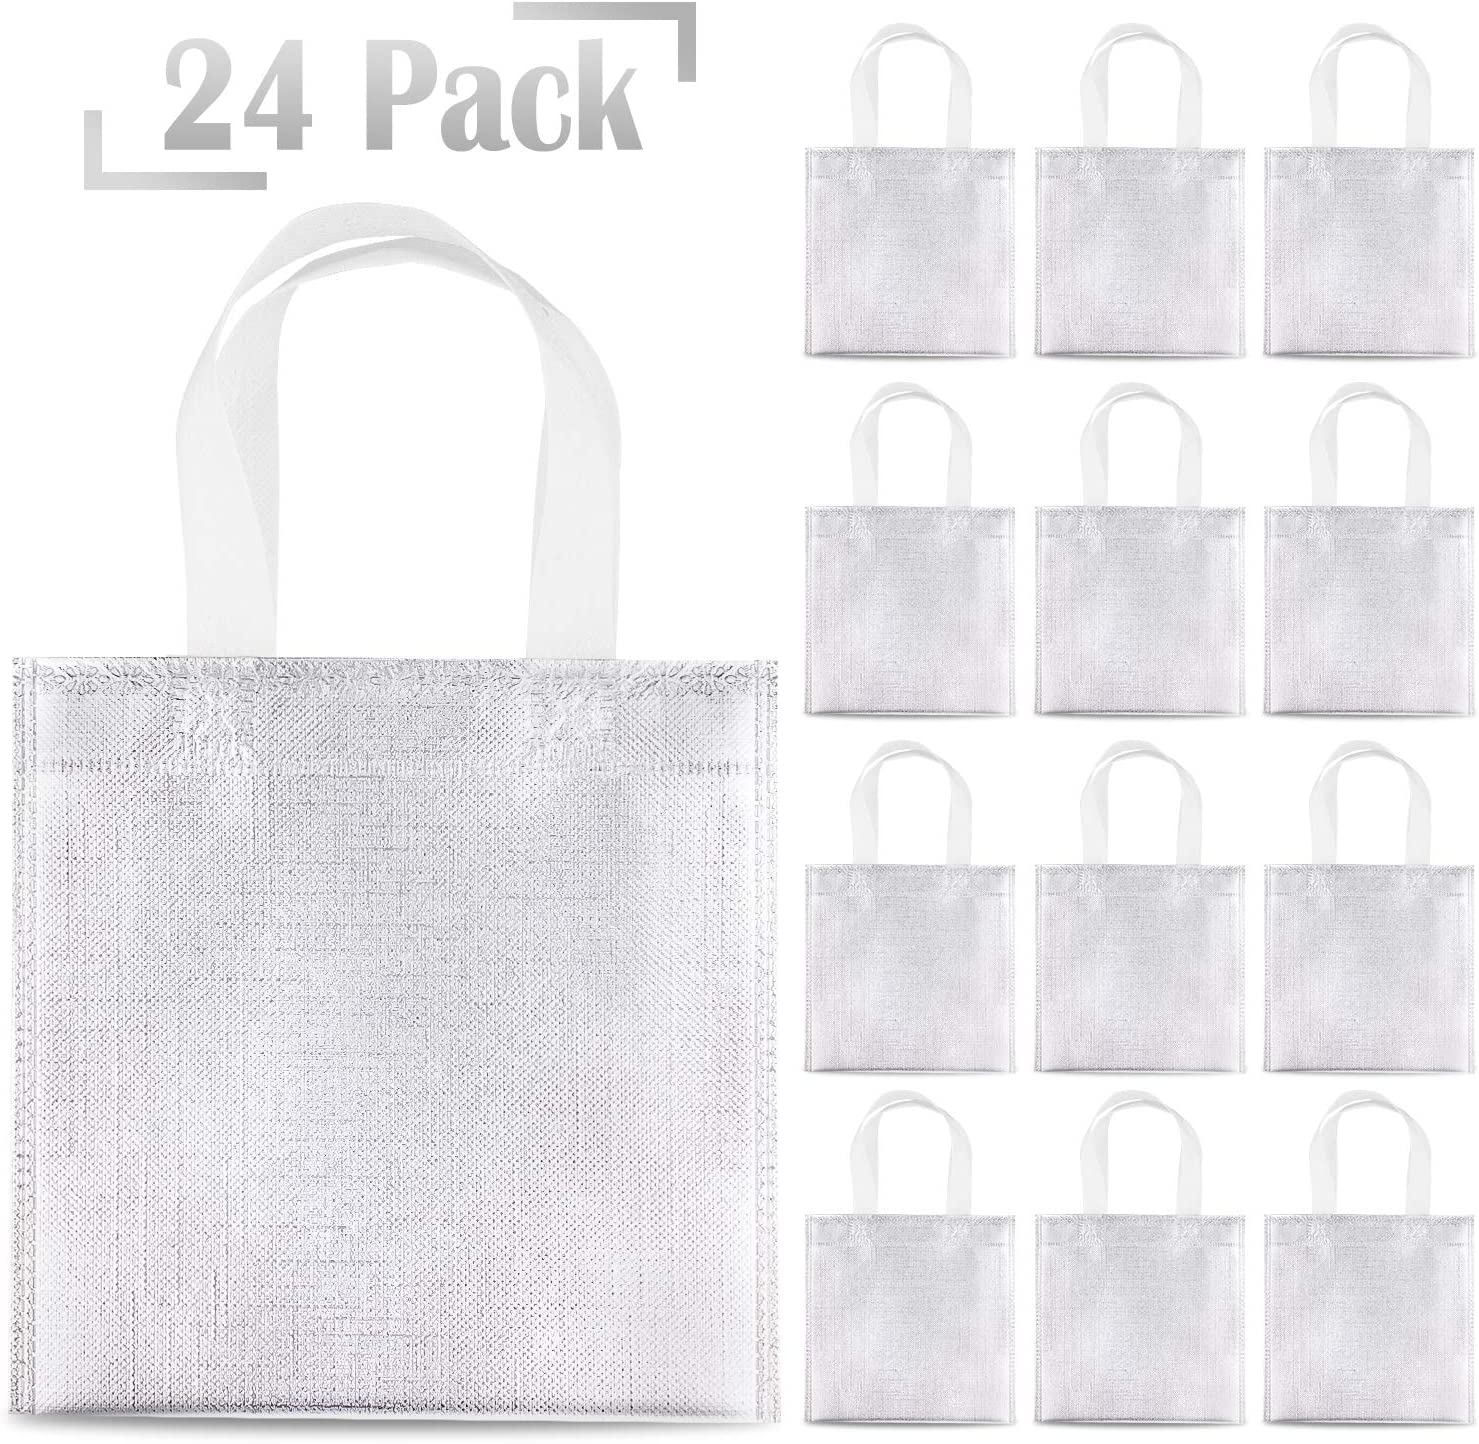 Whaline 24 Pieces 8x8 Non-Woven Small Party Bags DIY Craft Bags for Event Birthday Golden Gift Bags Reusable candy Goodie Bags,Flag bag Glossy Tote Bags